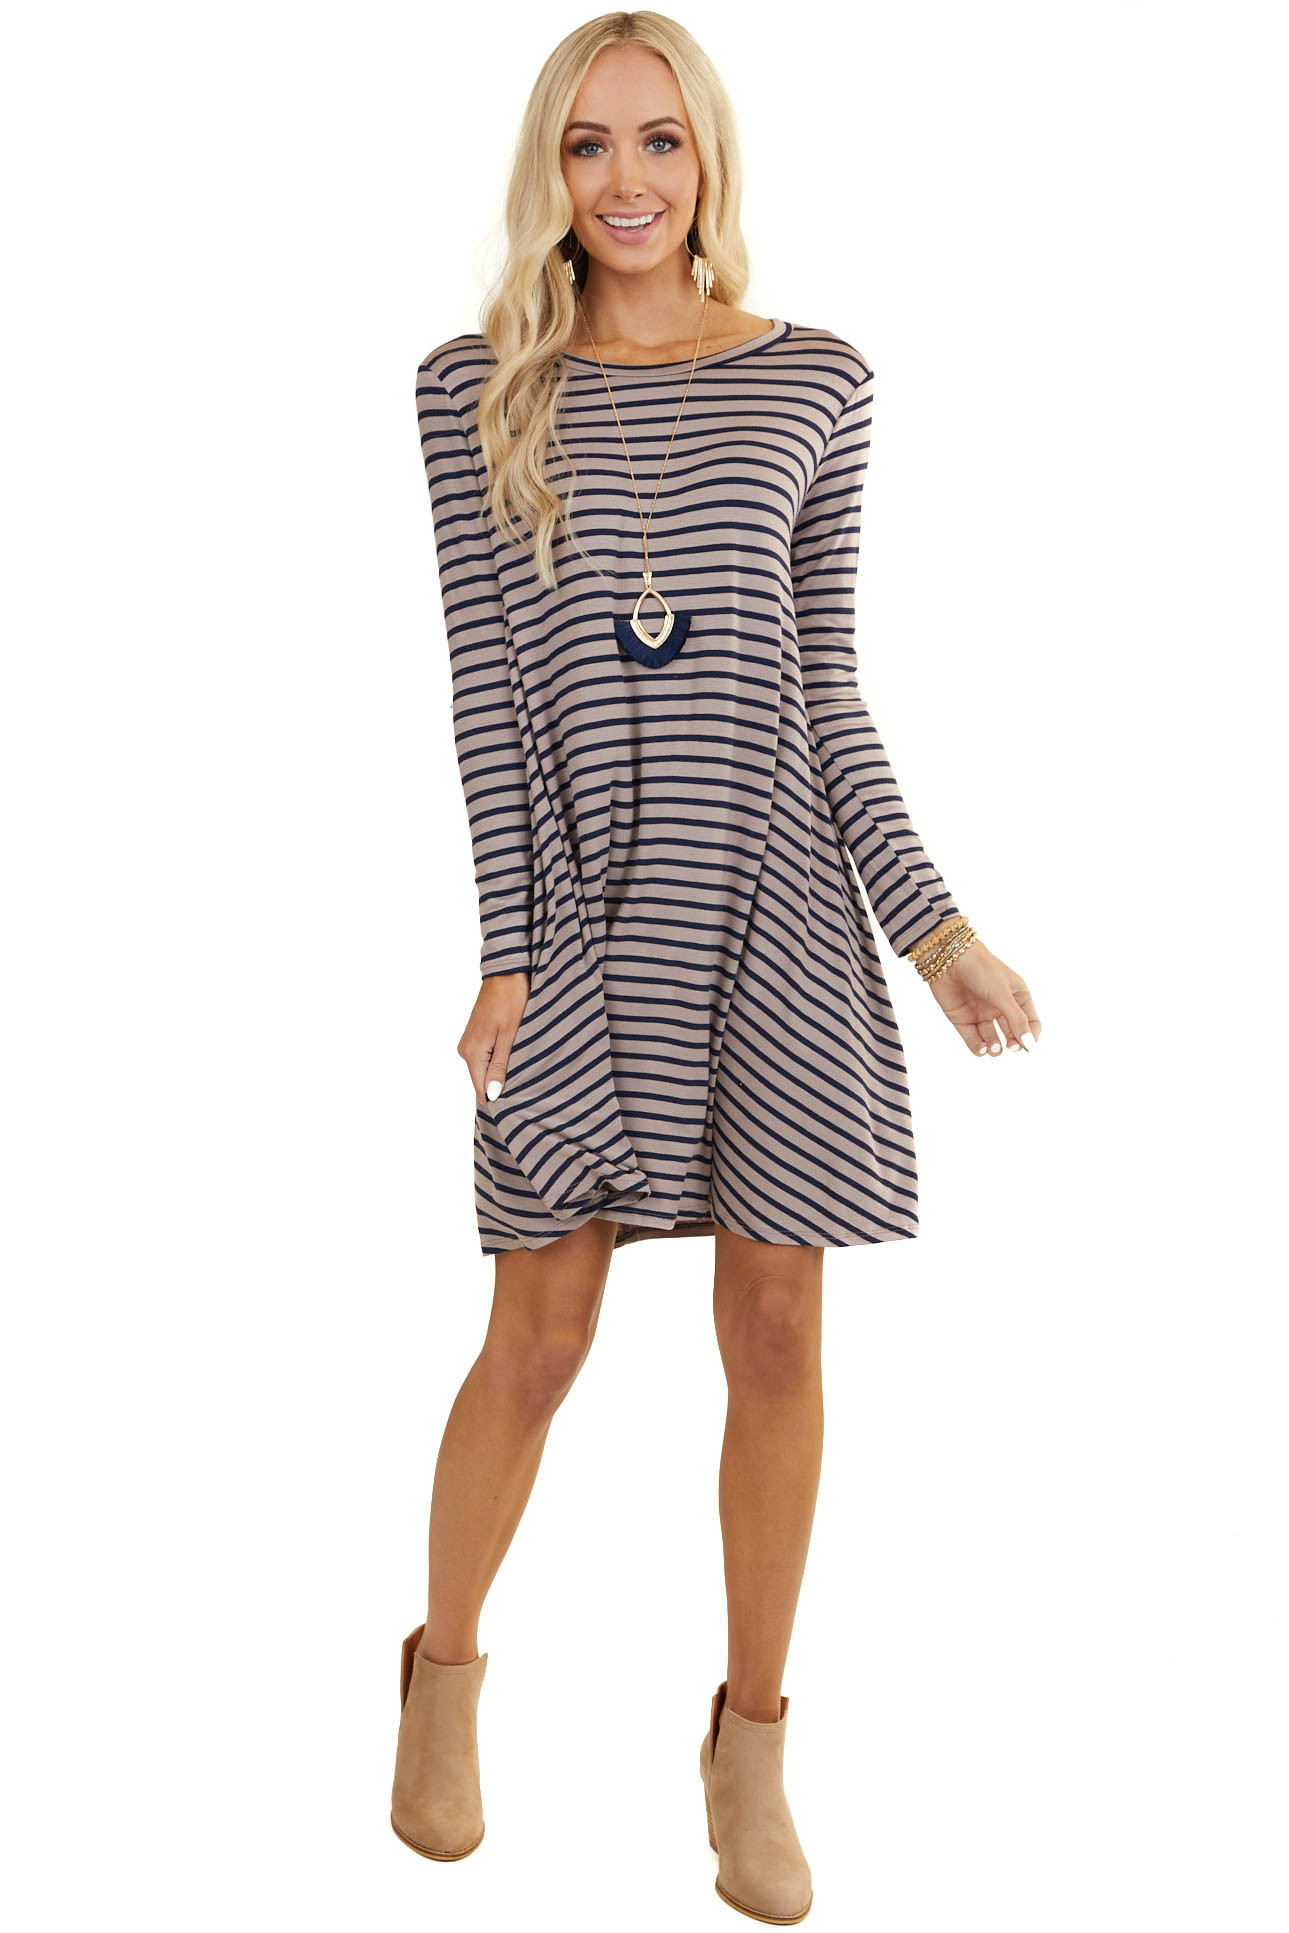 Latte and Navy Striped Knit Dress with Long Sleeves